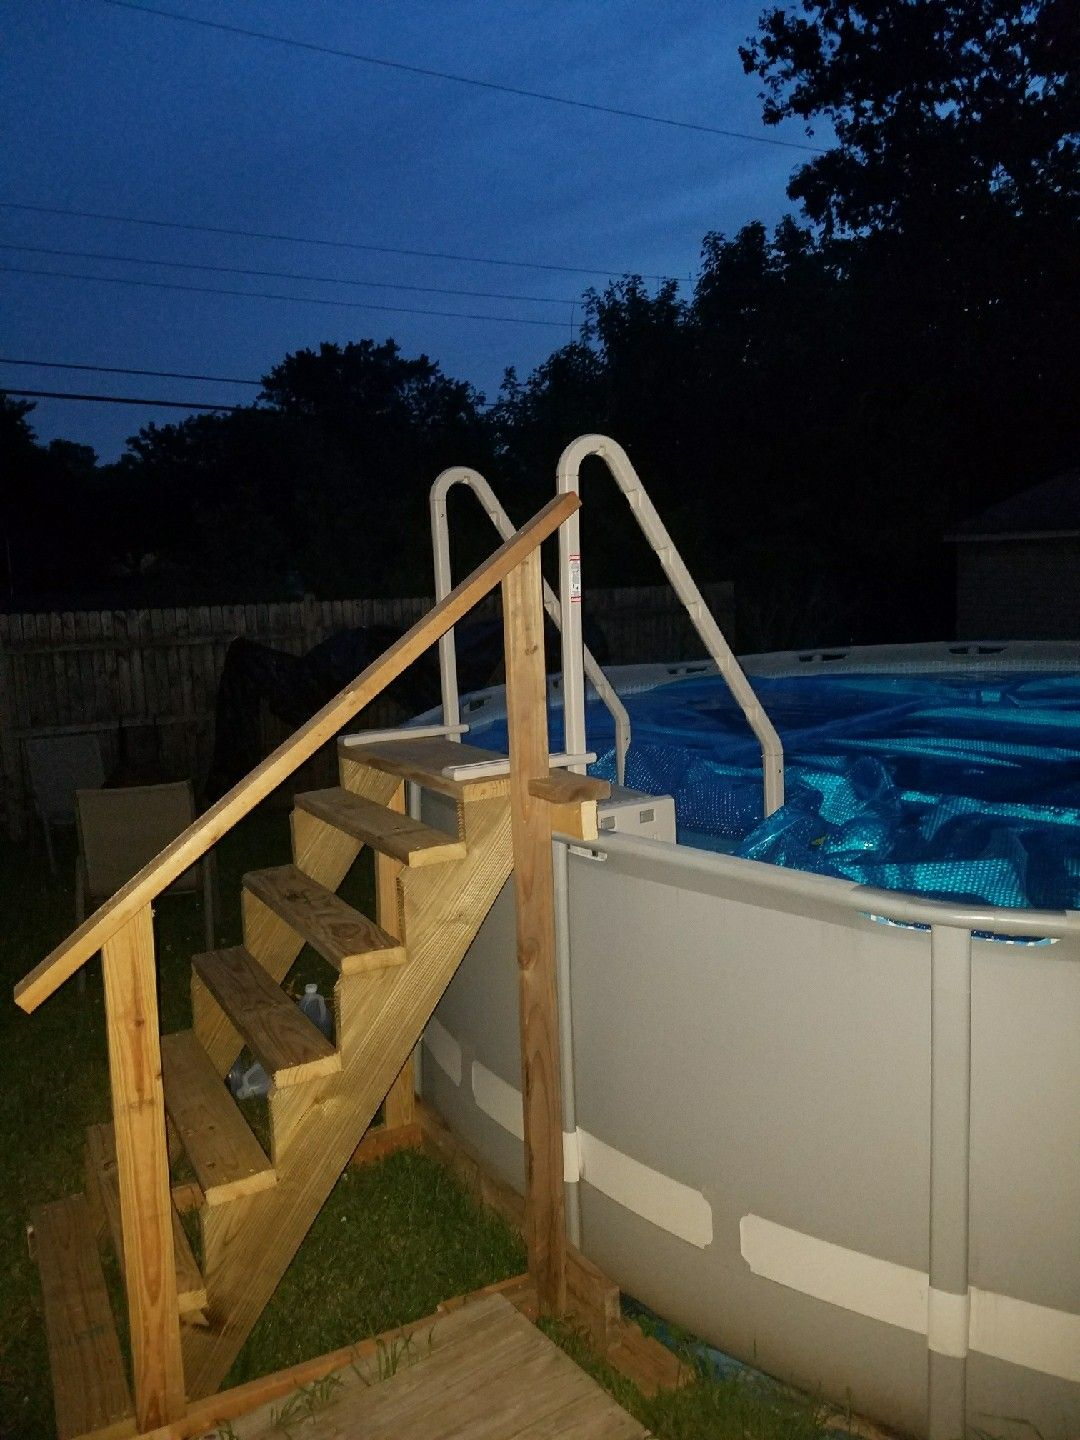 I Built Stairs For Our Pool With Confer Steps Attached For Easy Entry And Exit Love Them Works Grea Backyard Pool Pool Deck Plans Backyard Pool Landscaping